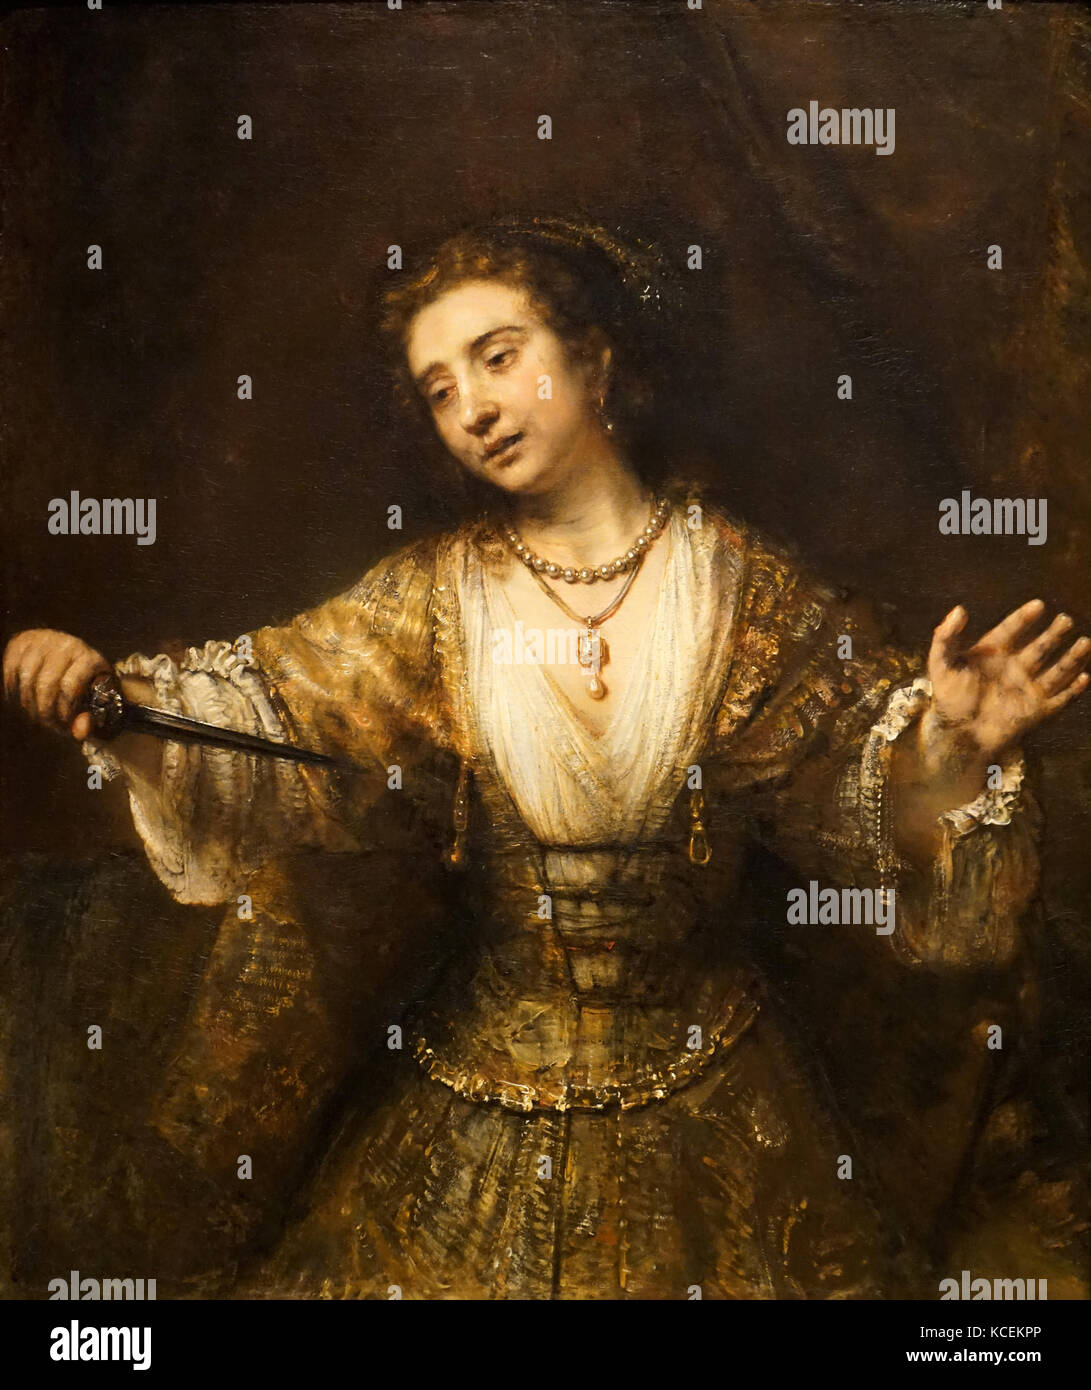 Painting titled 'Lucretia' by Rembrandt (1606-1669) a Dutch draughtsman, painter and printmaker. Dated 17th - Stock Image